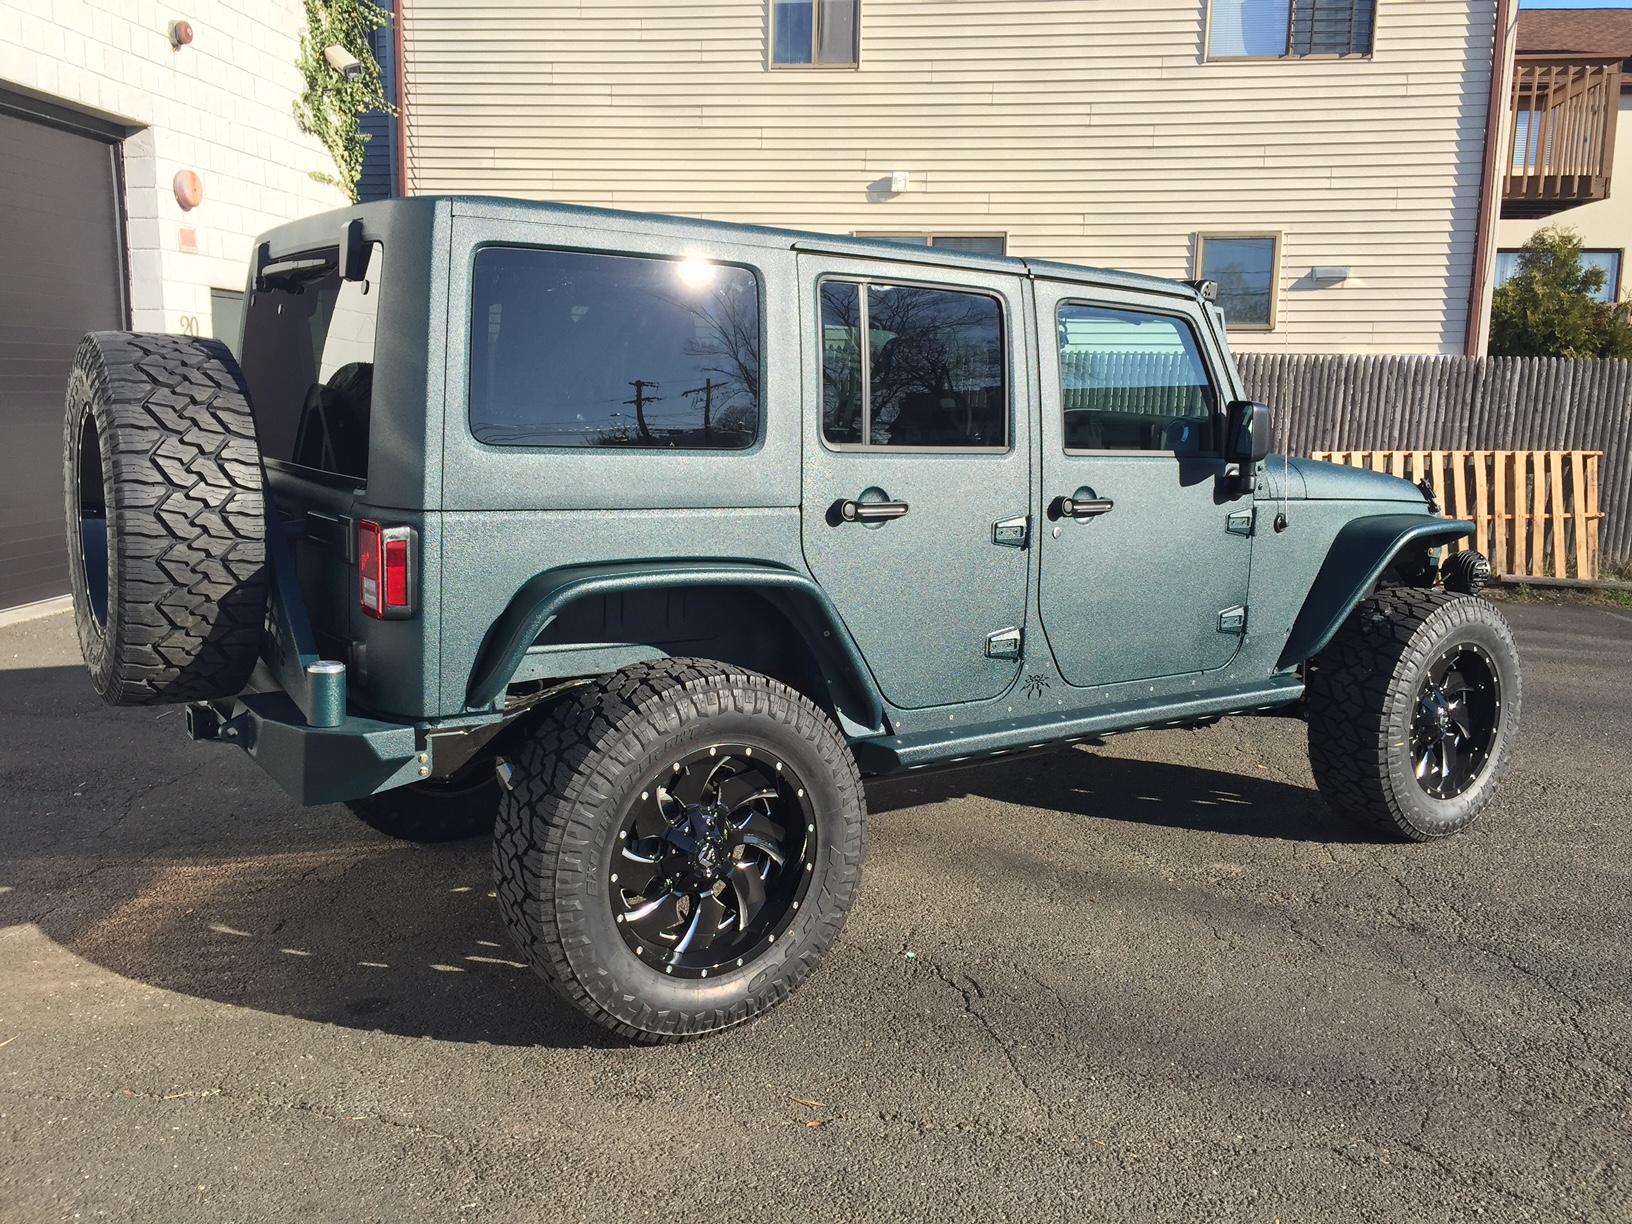 Customized 2 door jeep wranglers